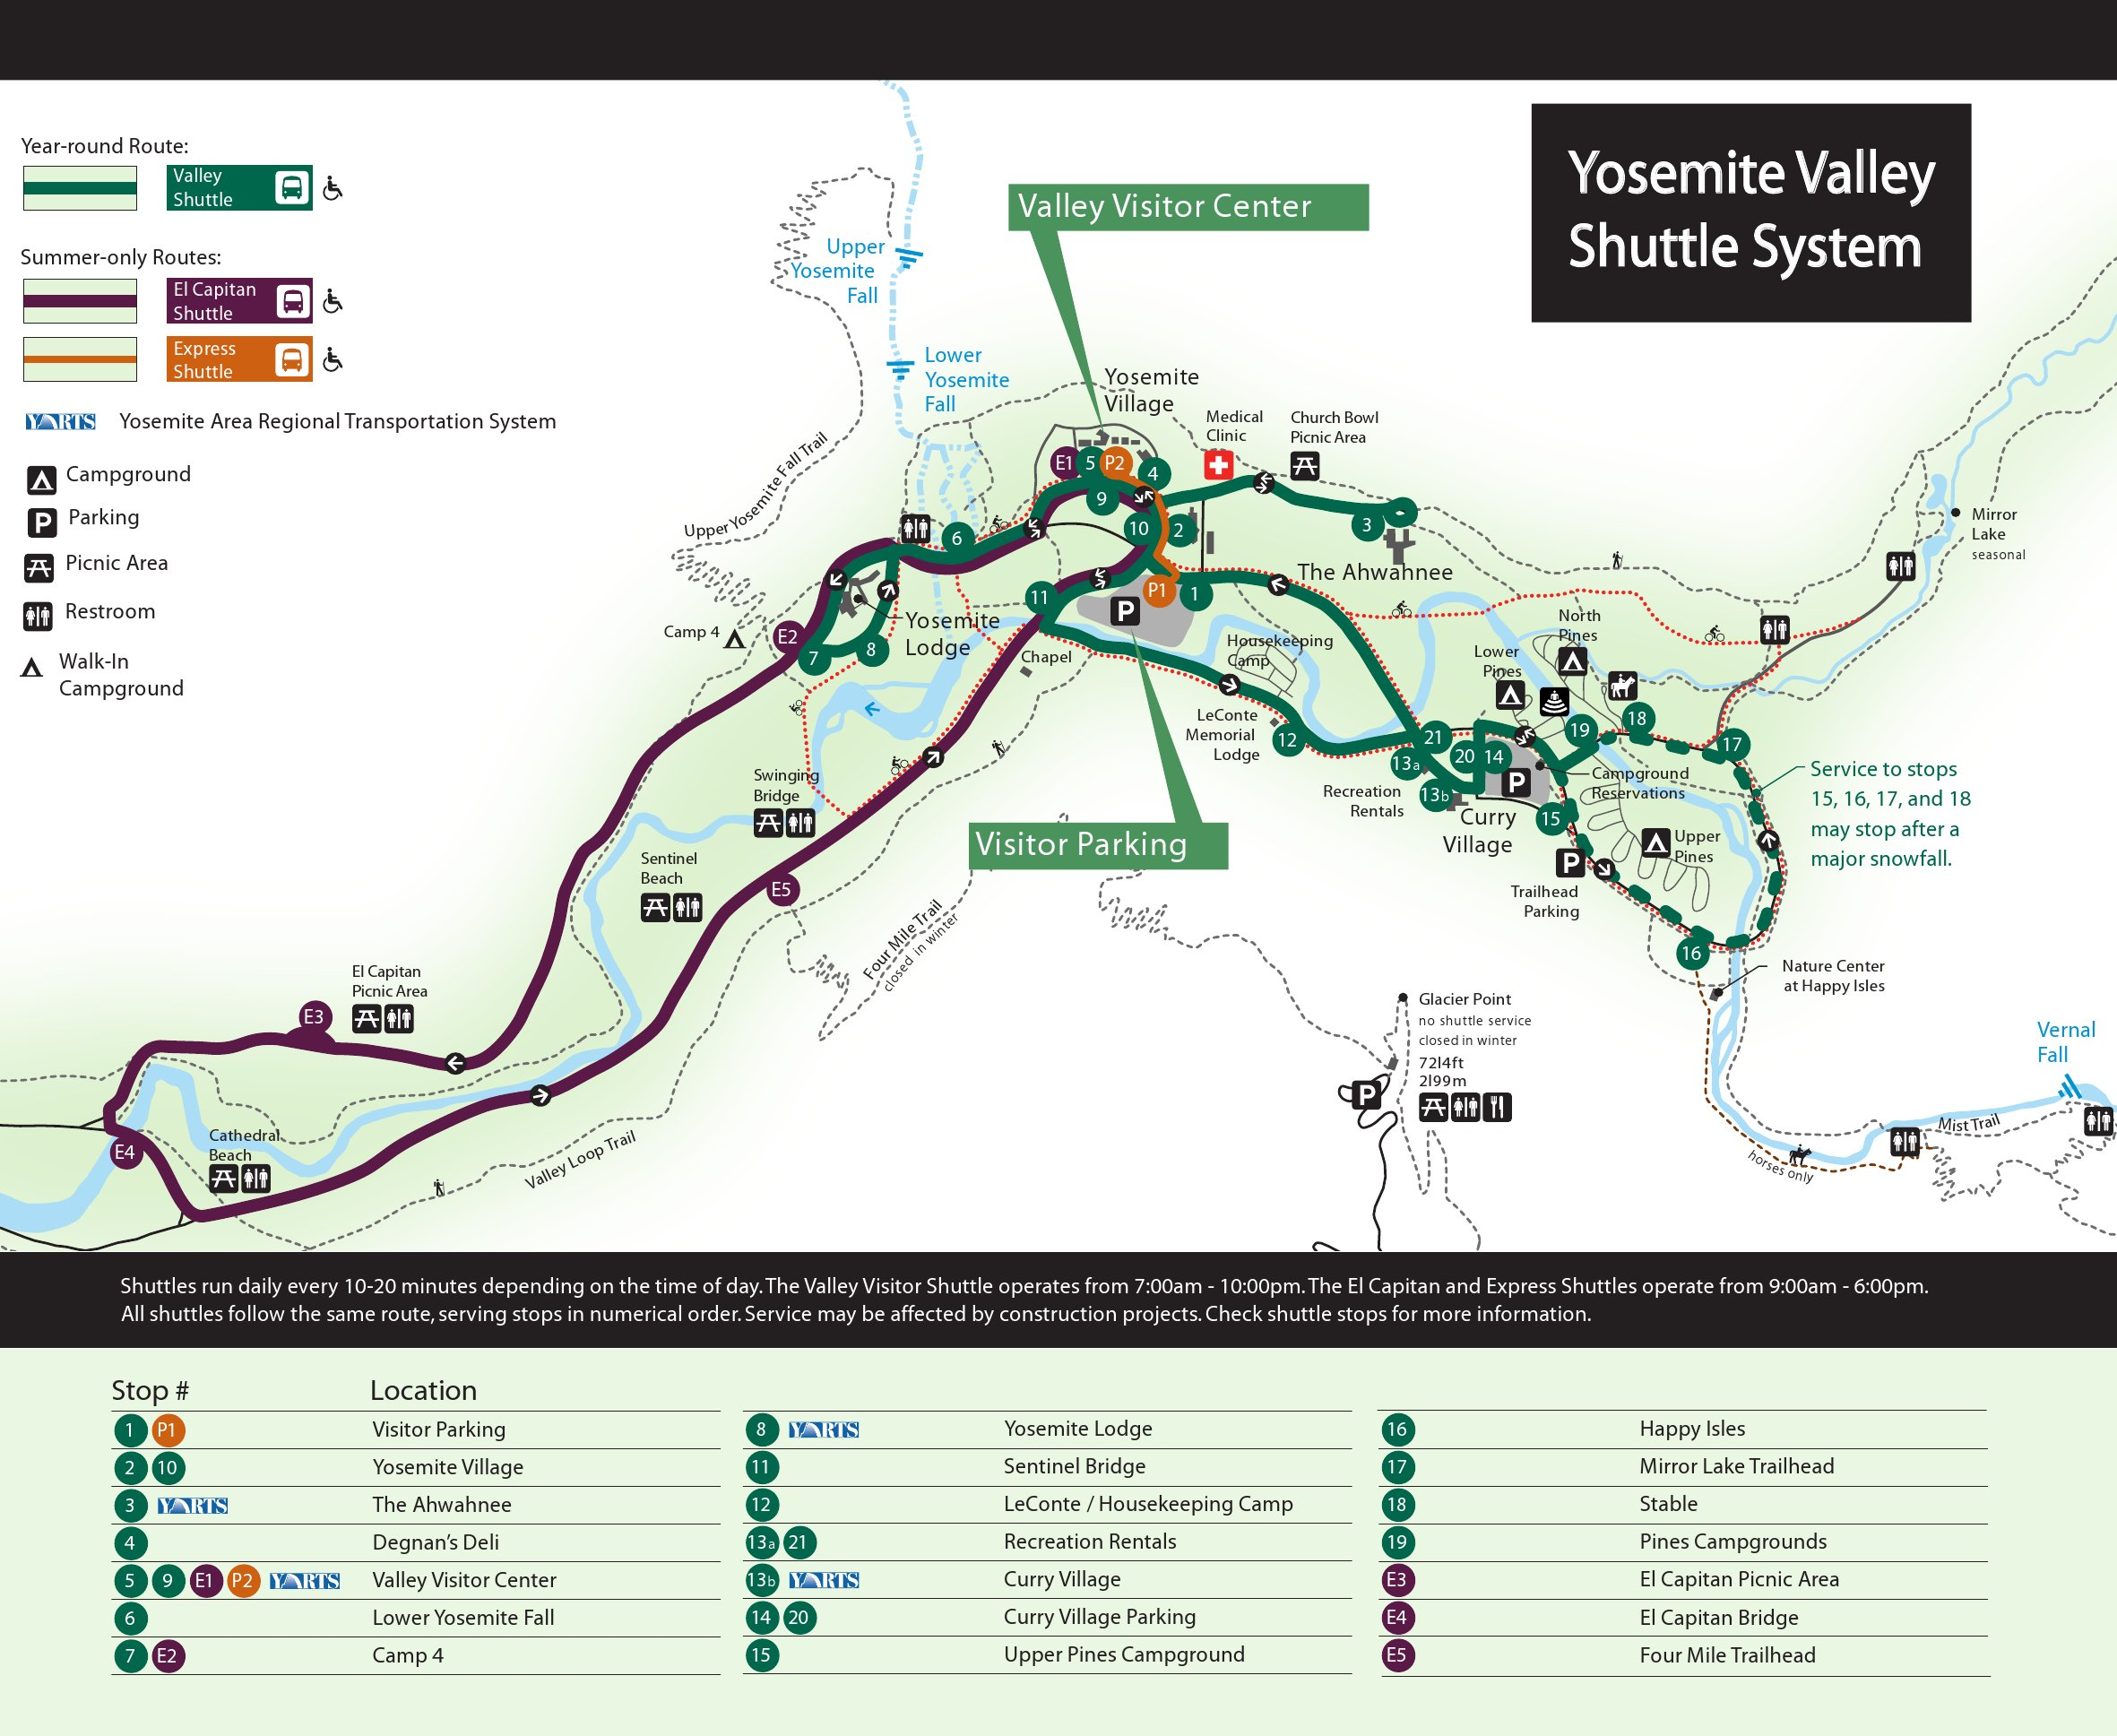 File:NPS yosemite-valley-shuttle-bus-map.jpg - Wikimedia Commons on laguna beach shuttle map, tuolumne meadows shuttle map, las vegas shuttle map, disneyland shuttle map,